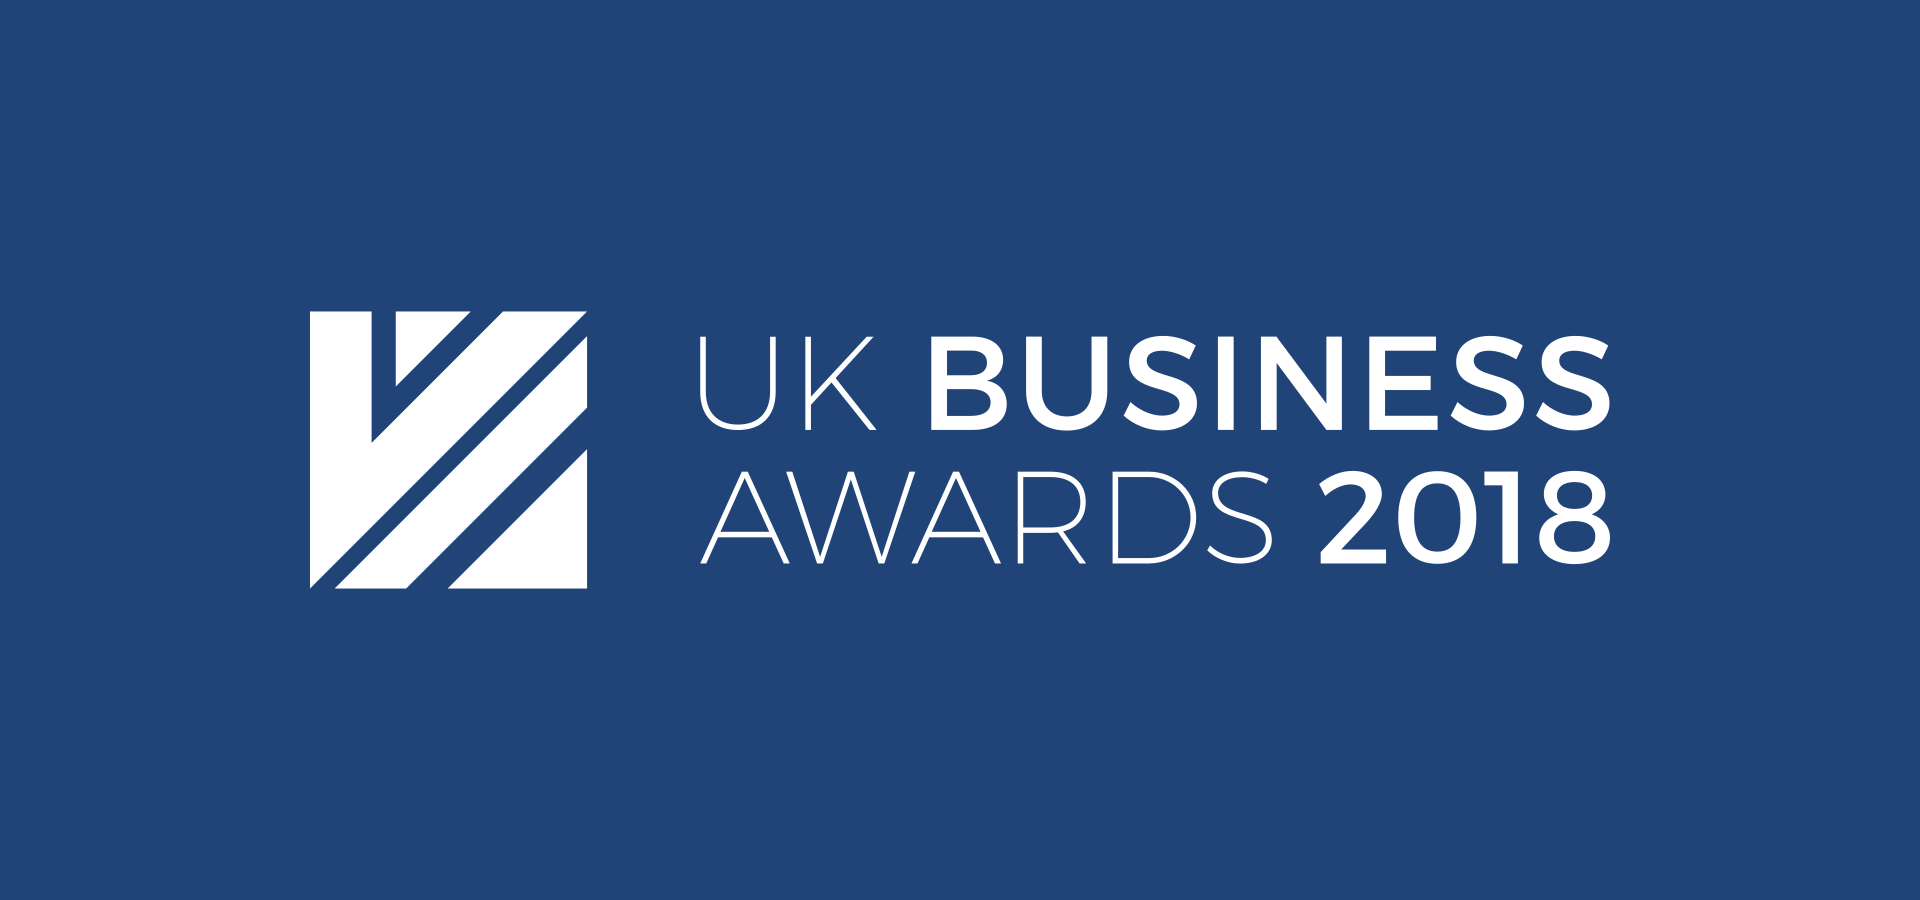 UK Business Awards 2018